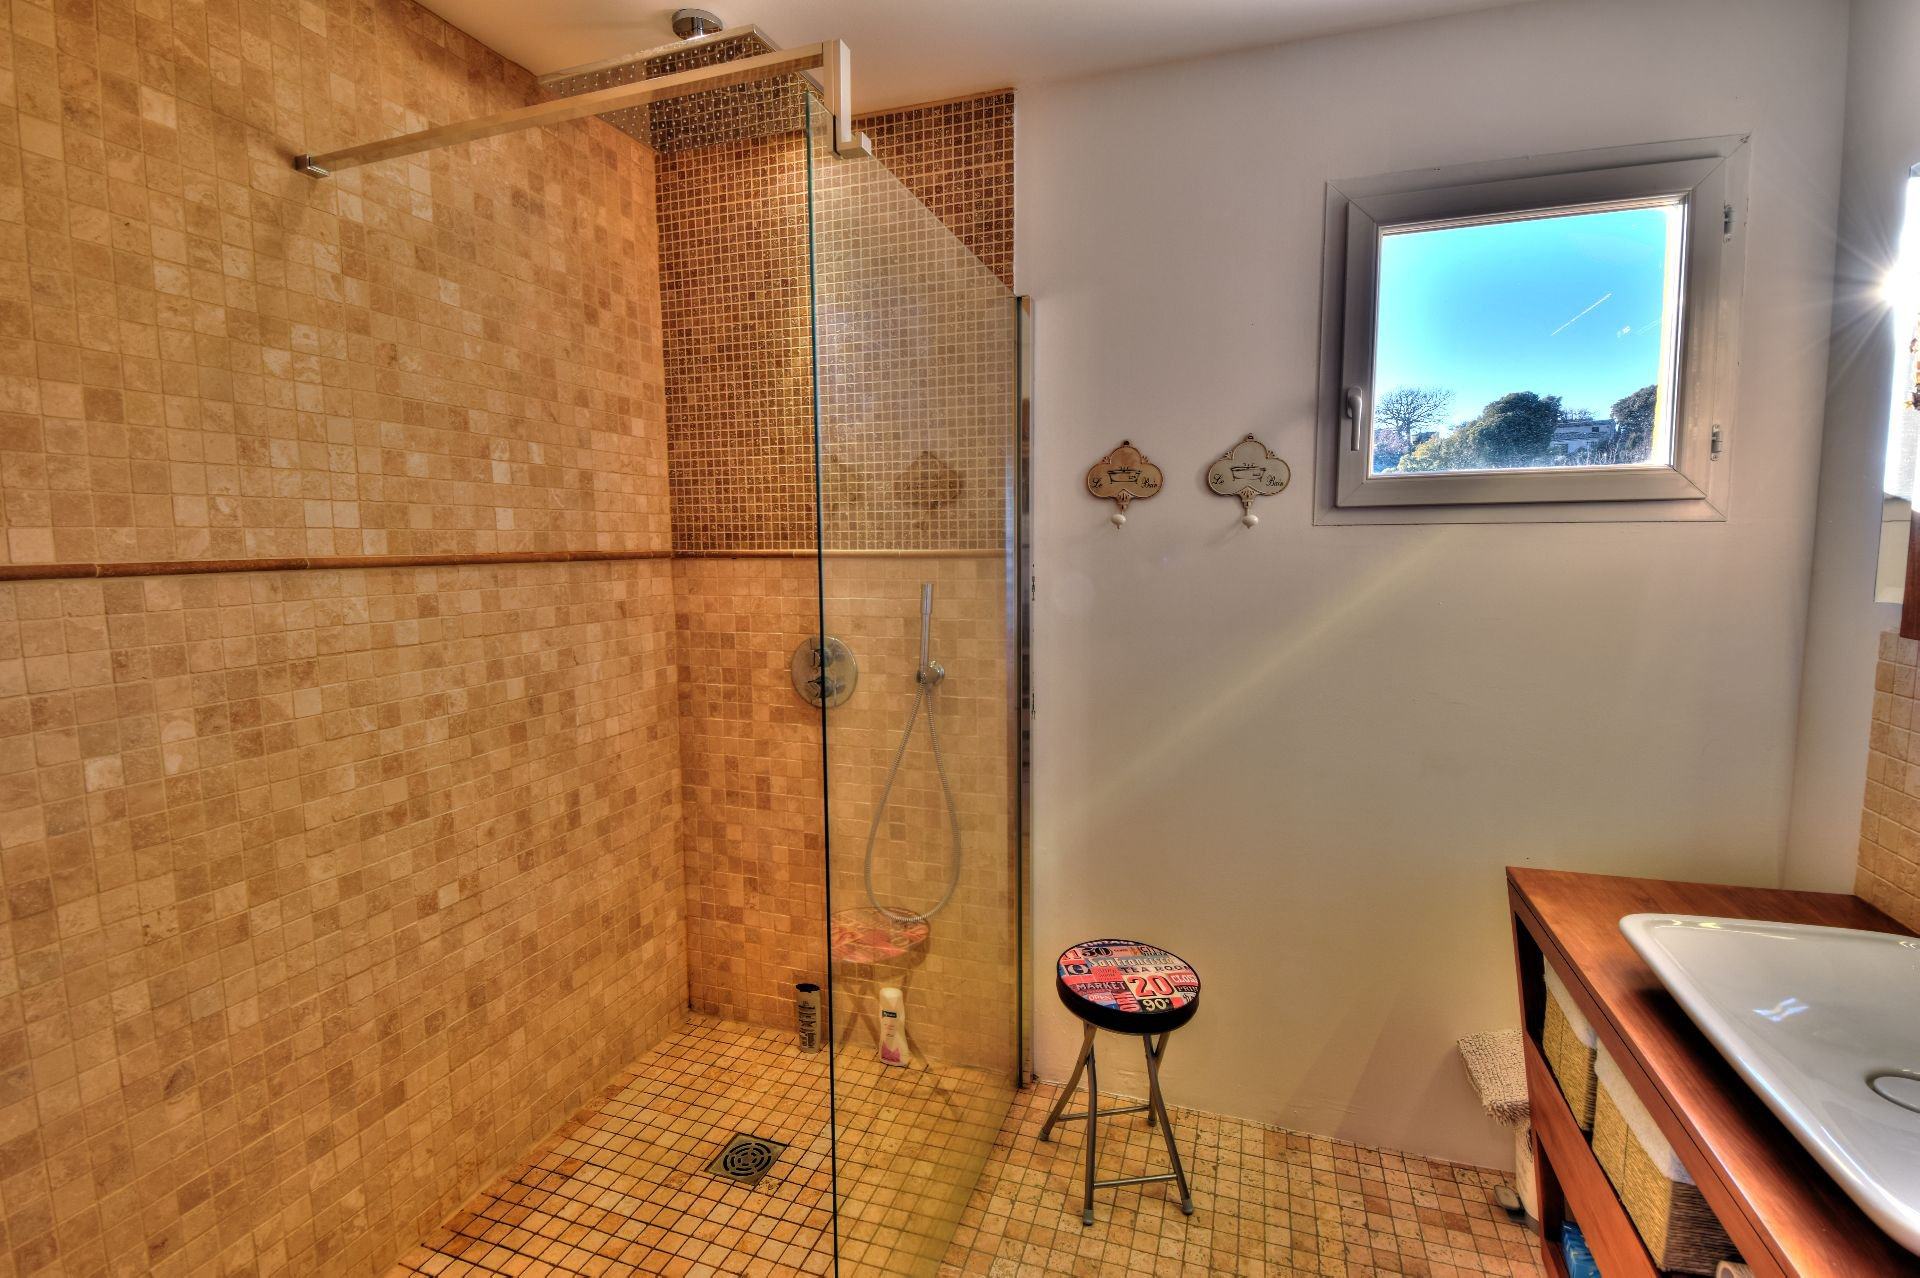 Room of water of the Parental Bedroom on the first floor of the bastide 4bed rooms with swimming pool Aups, Var, Provence